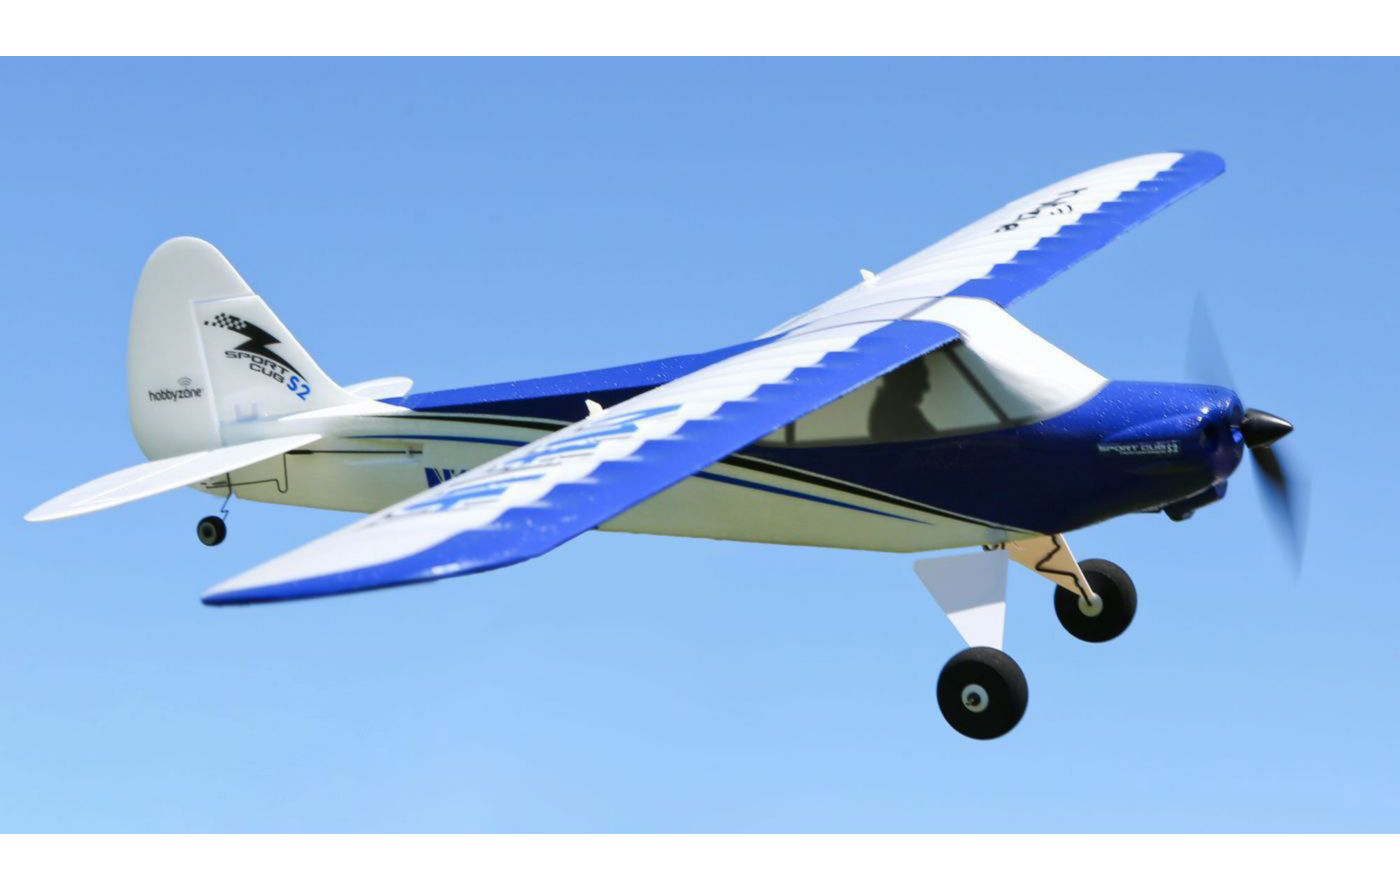 Image for Sport Cub S RTF with SAFE from Force RC